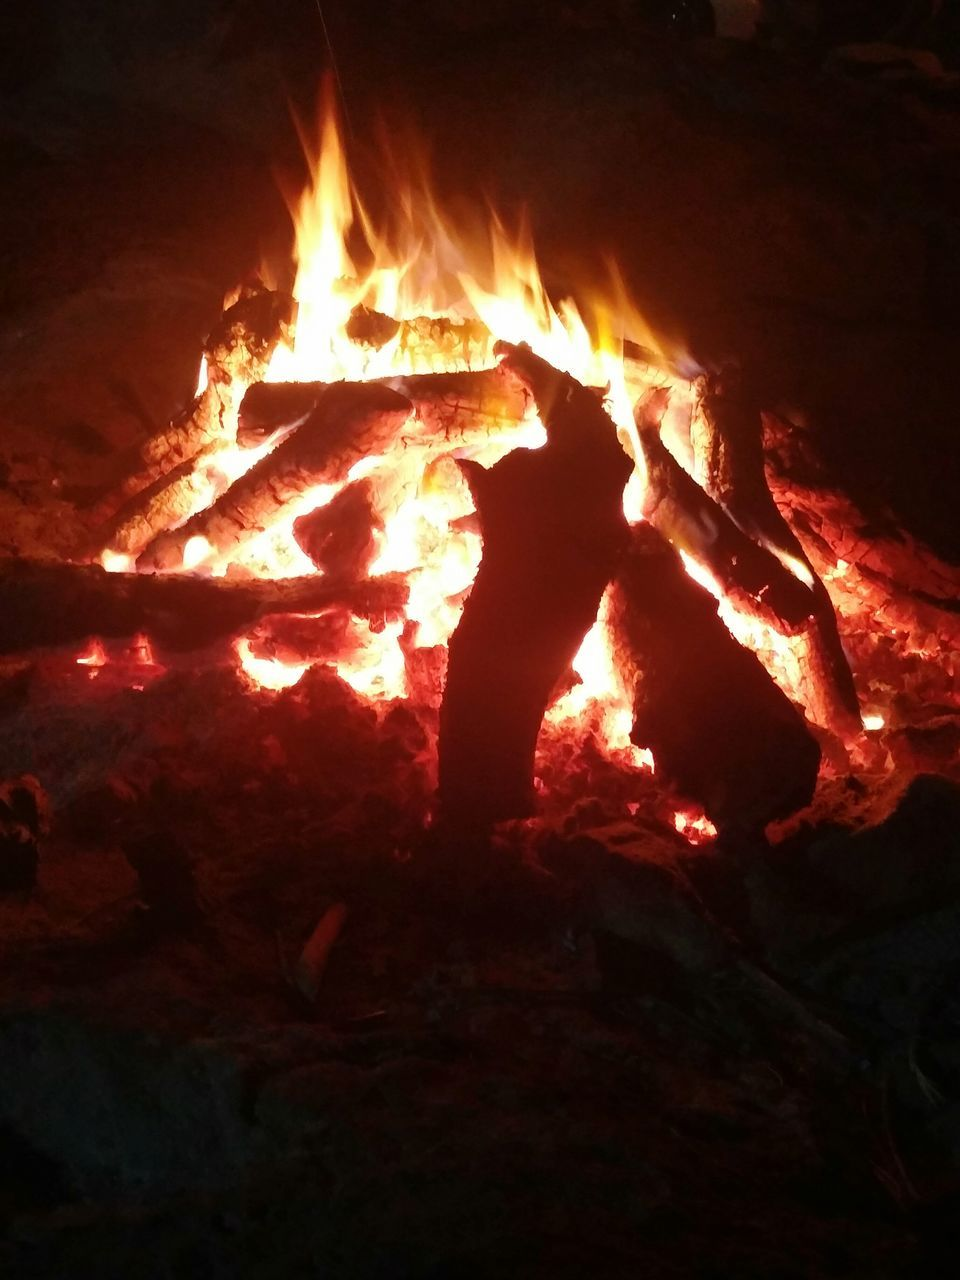 burning, heat - temperature, flame, glowing, night, no people, wood - material, bonfire, outdoors, close-up, nature